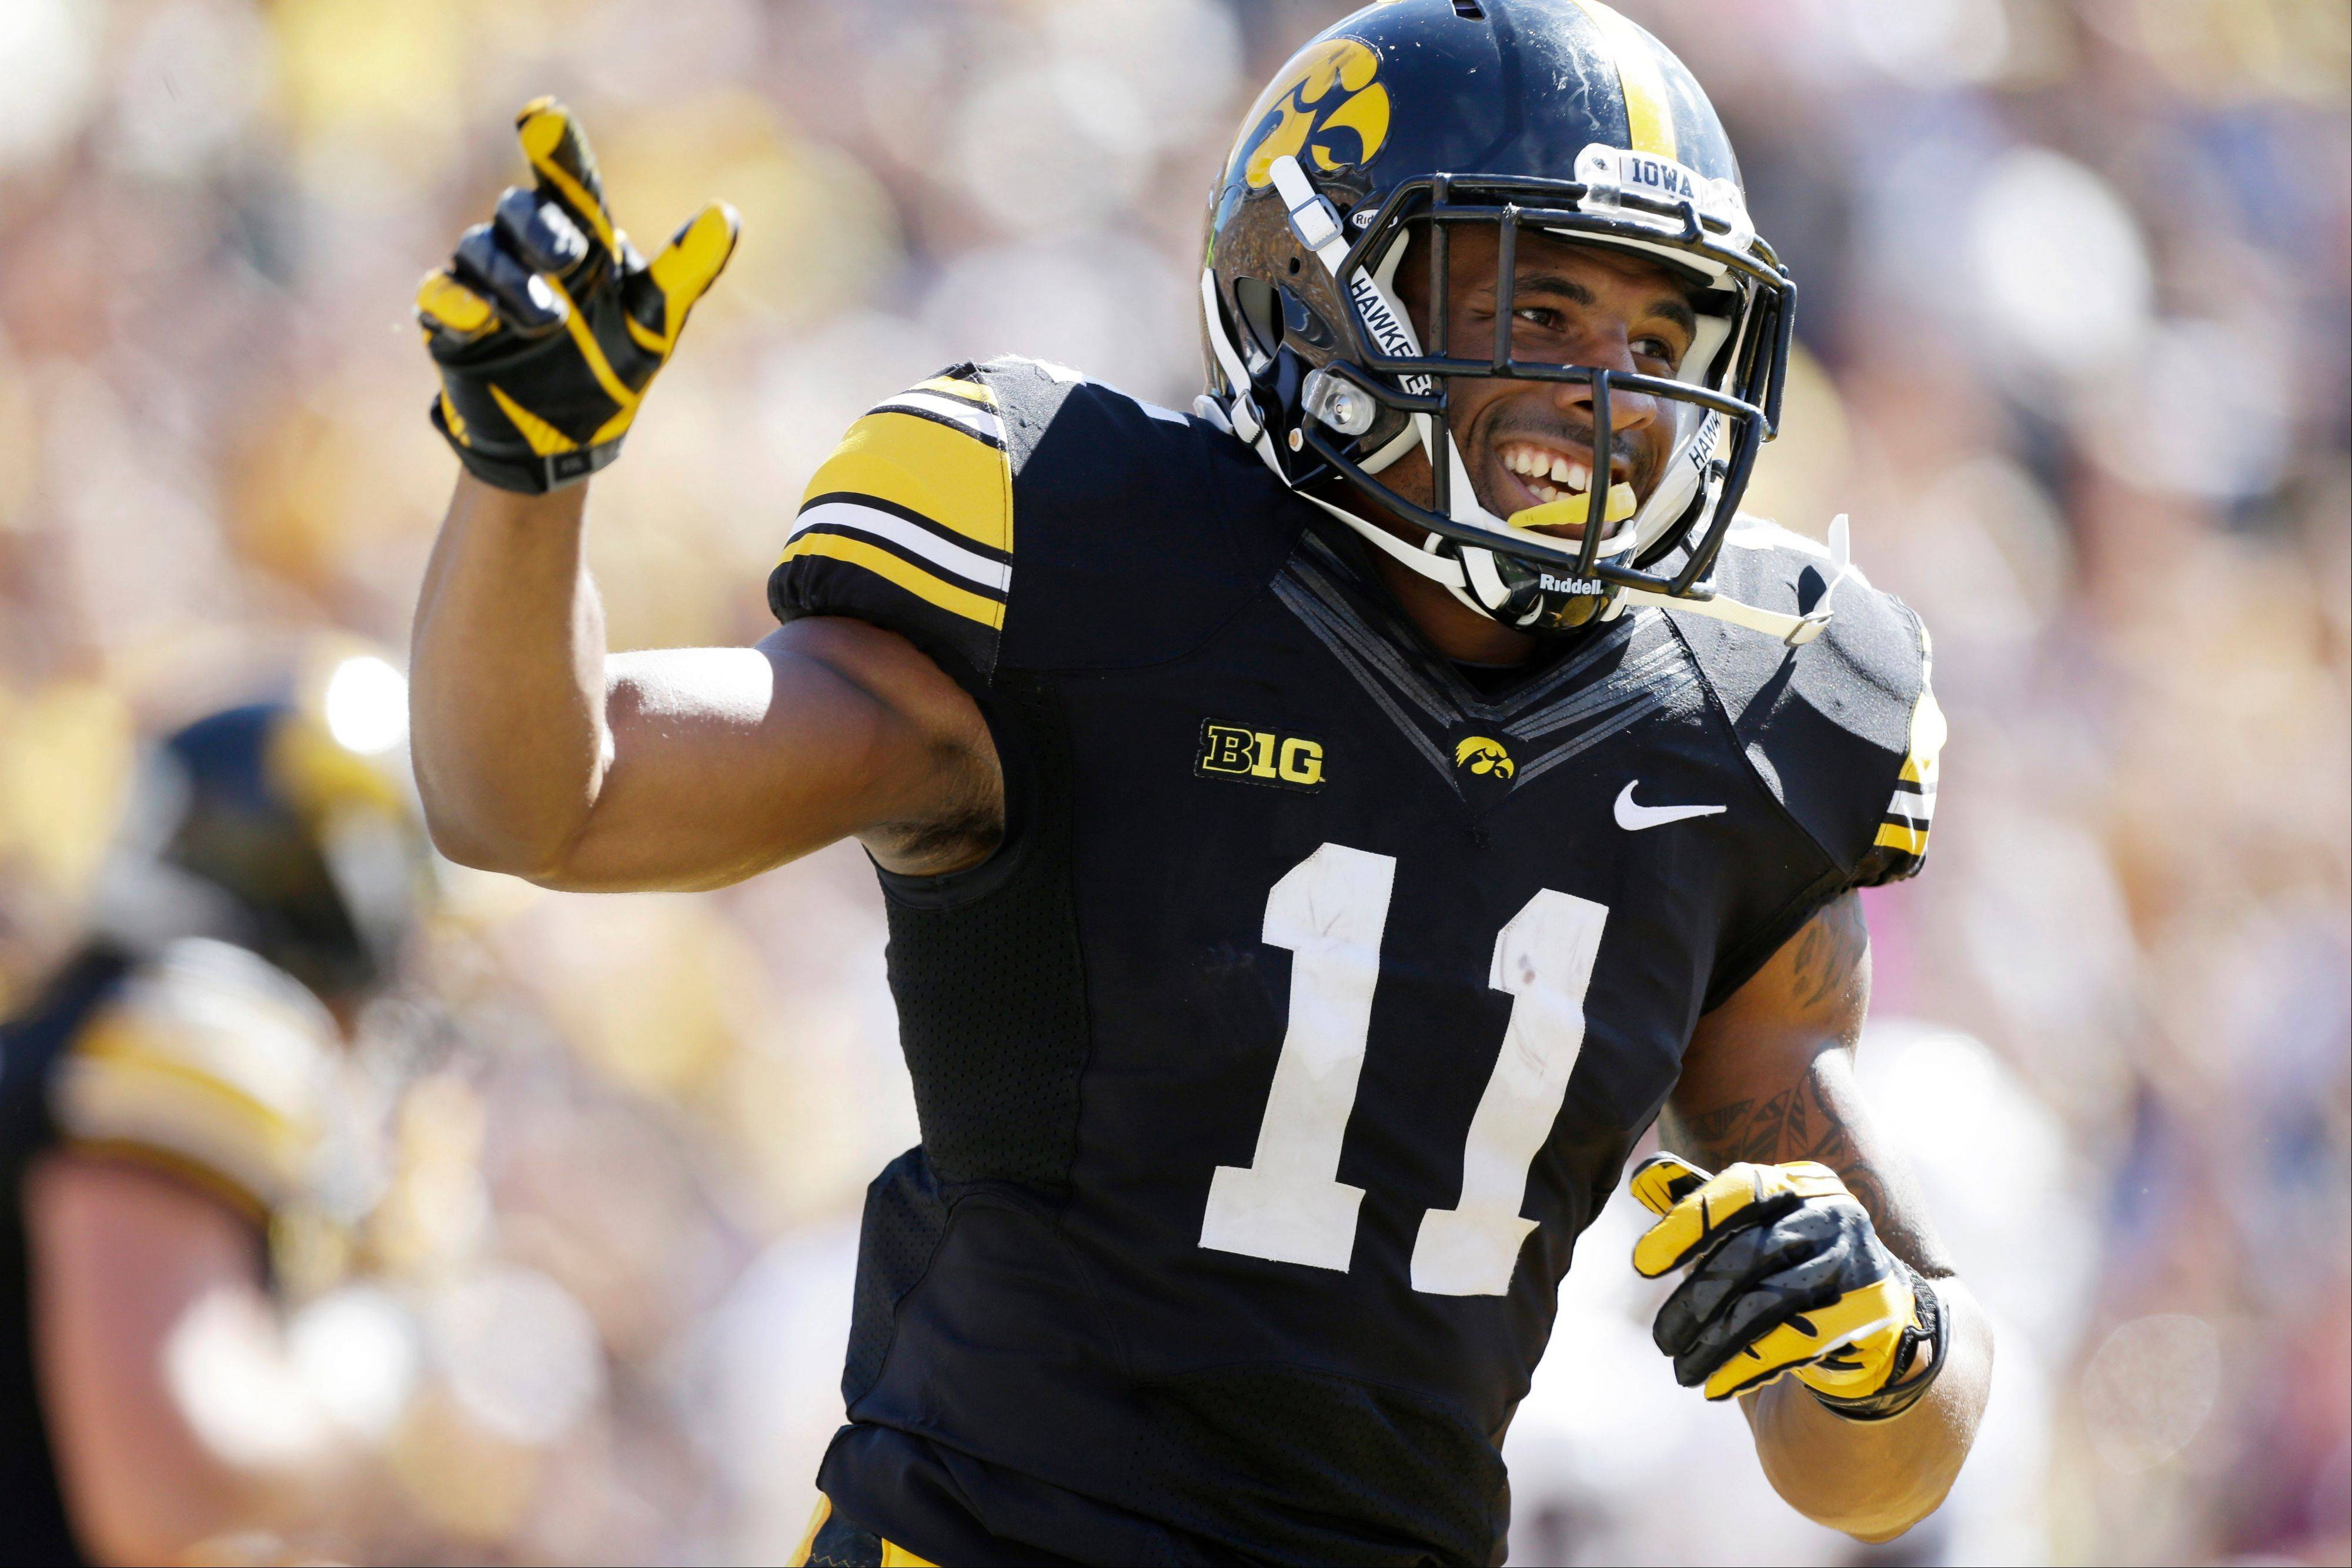 Iowa's Kevonte Martin-Manley celebrates after returning a punt 63-yards for a touchdown during the first half of an NCAA college football game against Western Michigan, Saturday, Sept. 21, 2013, in Iowa City, Iowa. Martin-Manley returned two punts for touchdowns in the game as Iowa won 59-3.